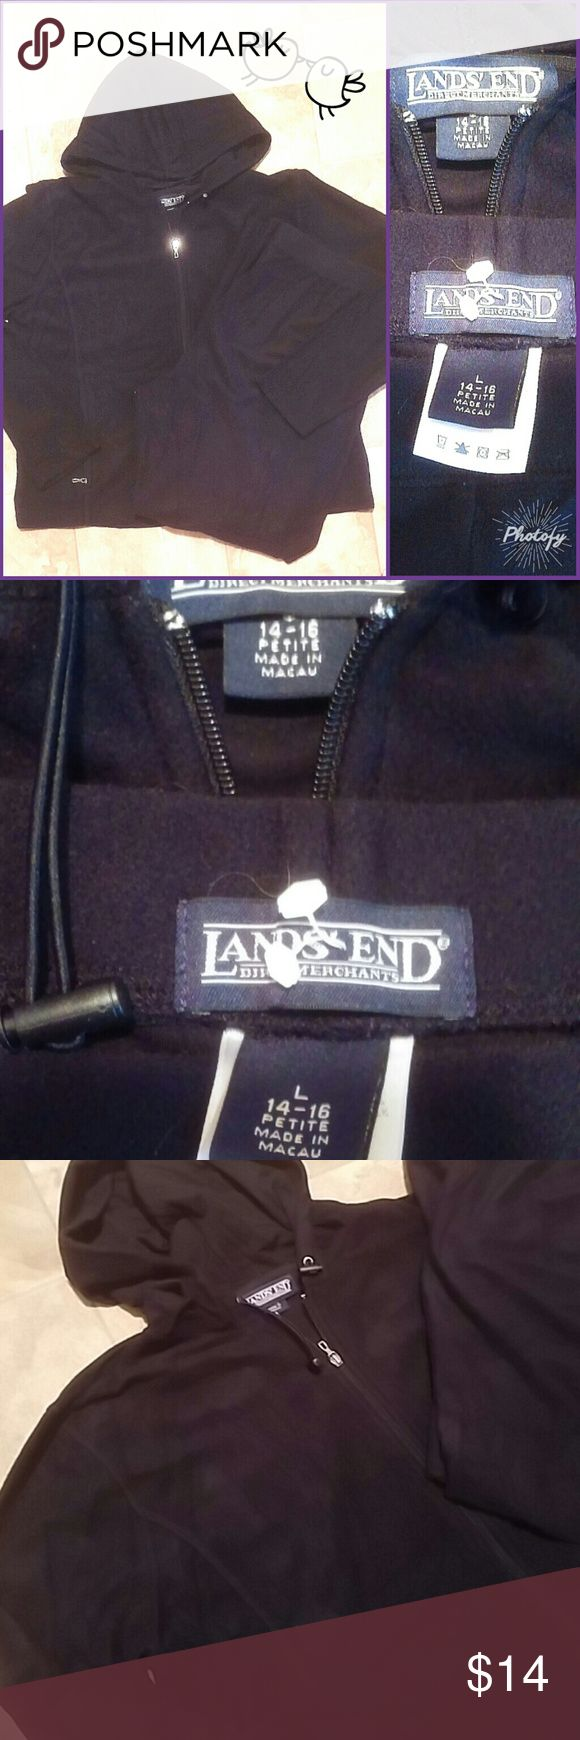 LAND'S END 14-16 Petite Knit Jacket & Pants Brand:  Lands End  Item: *Beautiful Black with an Almost Velour Feel to Each Piece  *Small Amount of Pilling at the Crotch. *There is a toggle cord in the hood. *Zip up pocket on both sides for your hands, phone, keys,etc. *84% Nylon, 16% Lycra/Spande *Both Pieces are Size Womens Large 14/16 Petite *The pictures are a bit hard to make out but this outfit is dark black with no fade.   *Such a Great Add on To Your Purchase Without Having to Pay Extra…